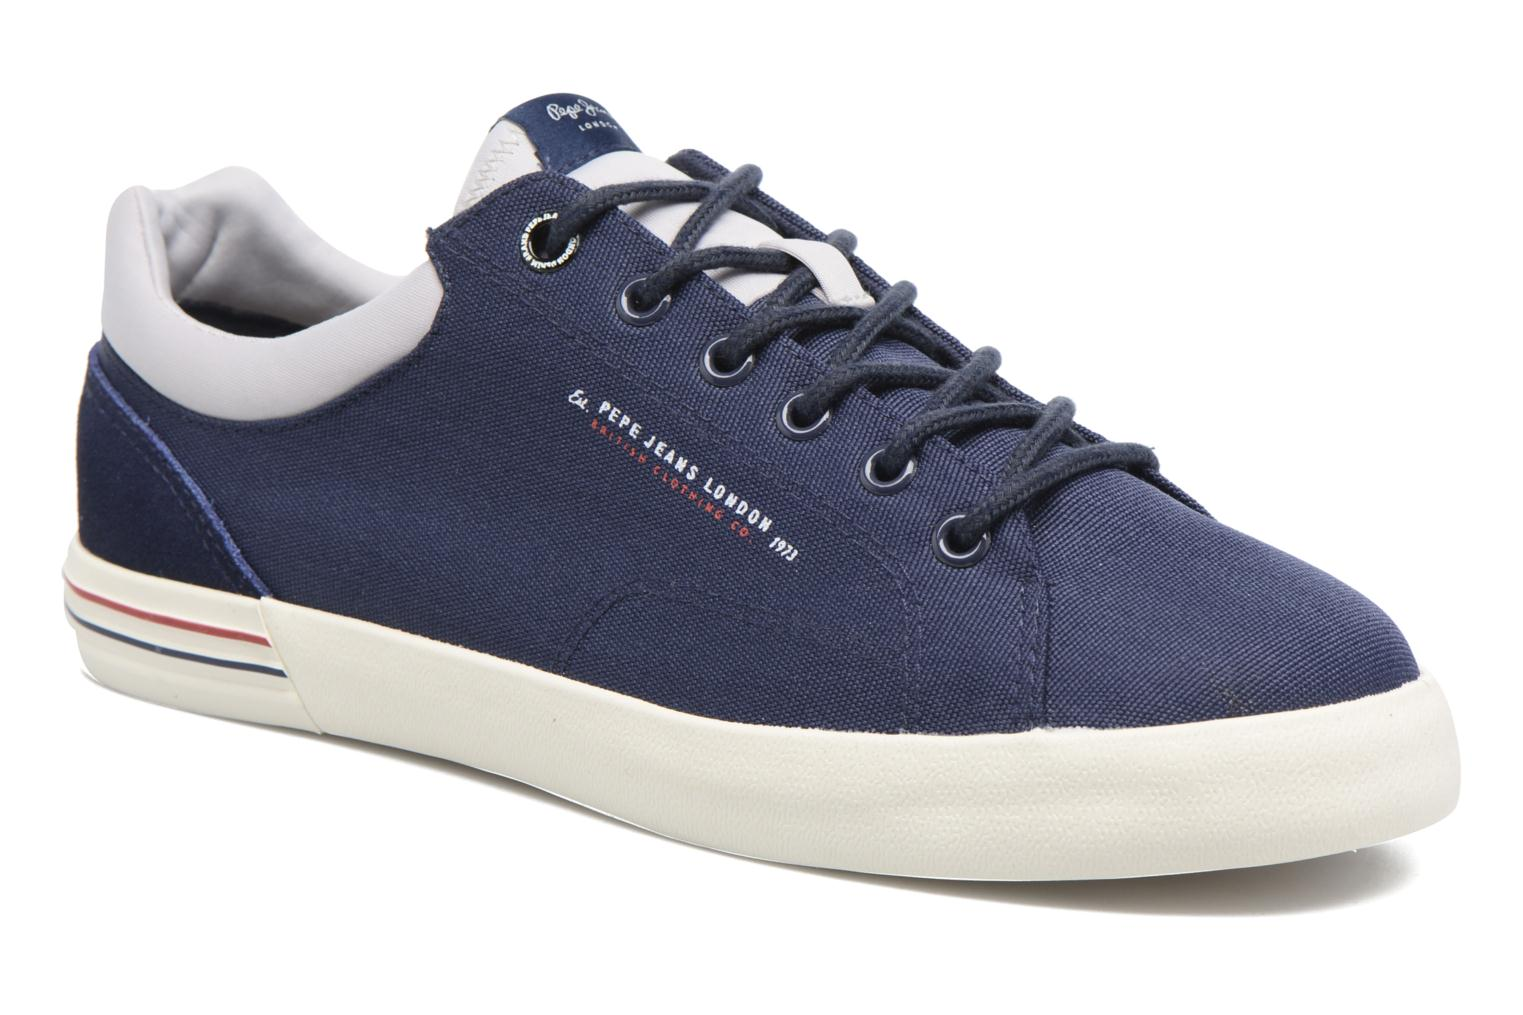 Sneakers North Nylon by Pepe jeans